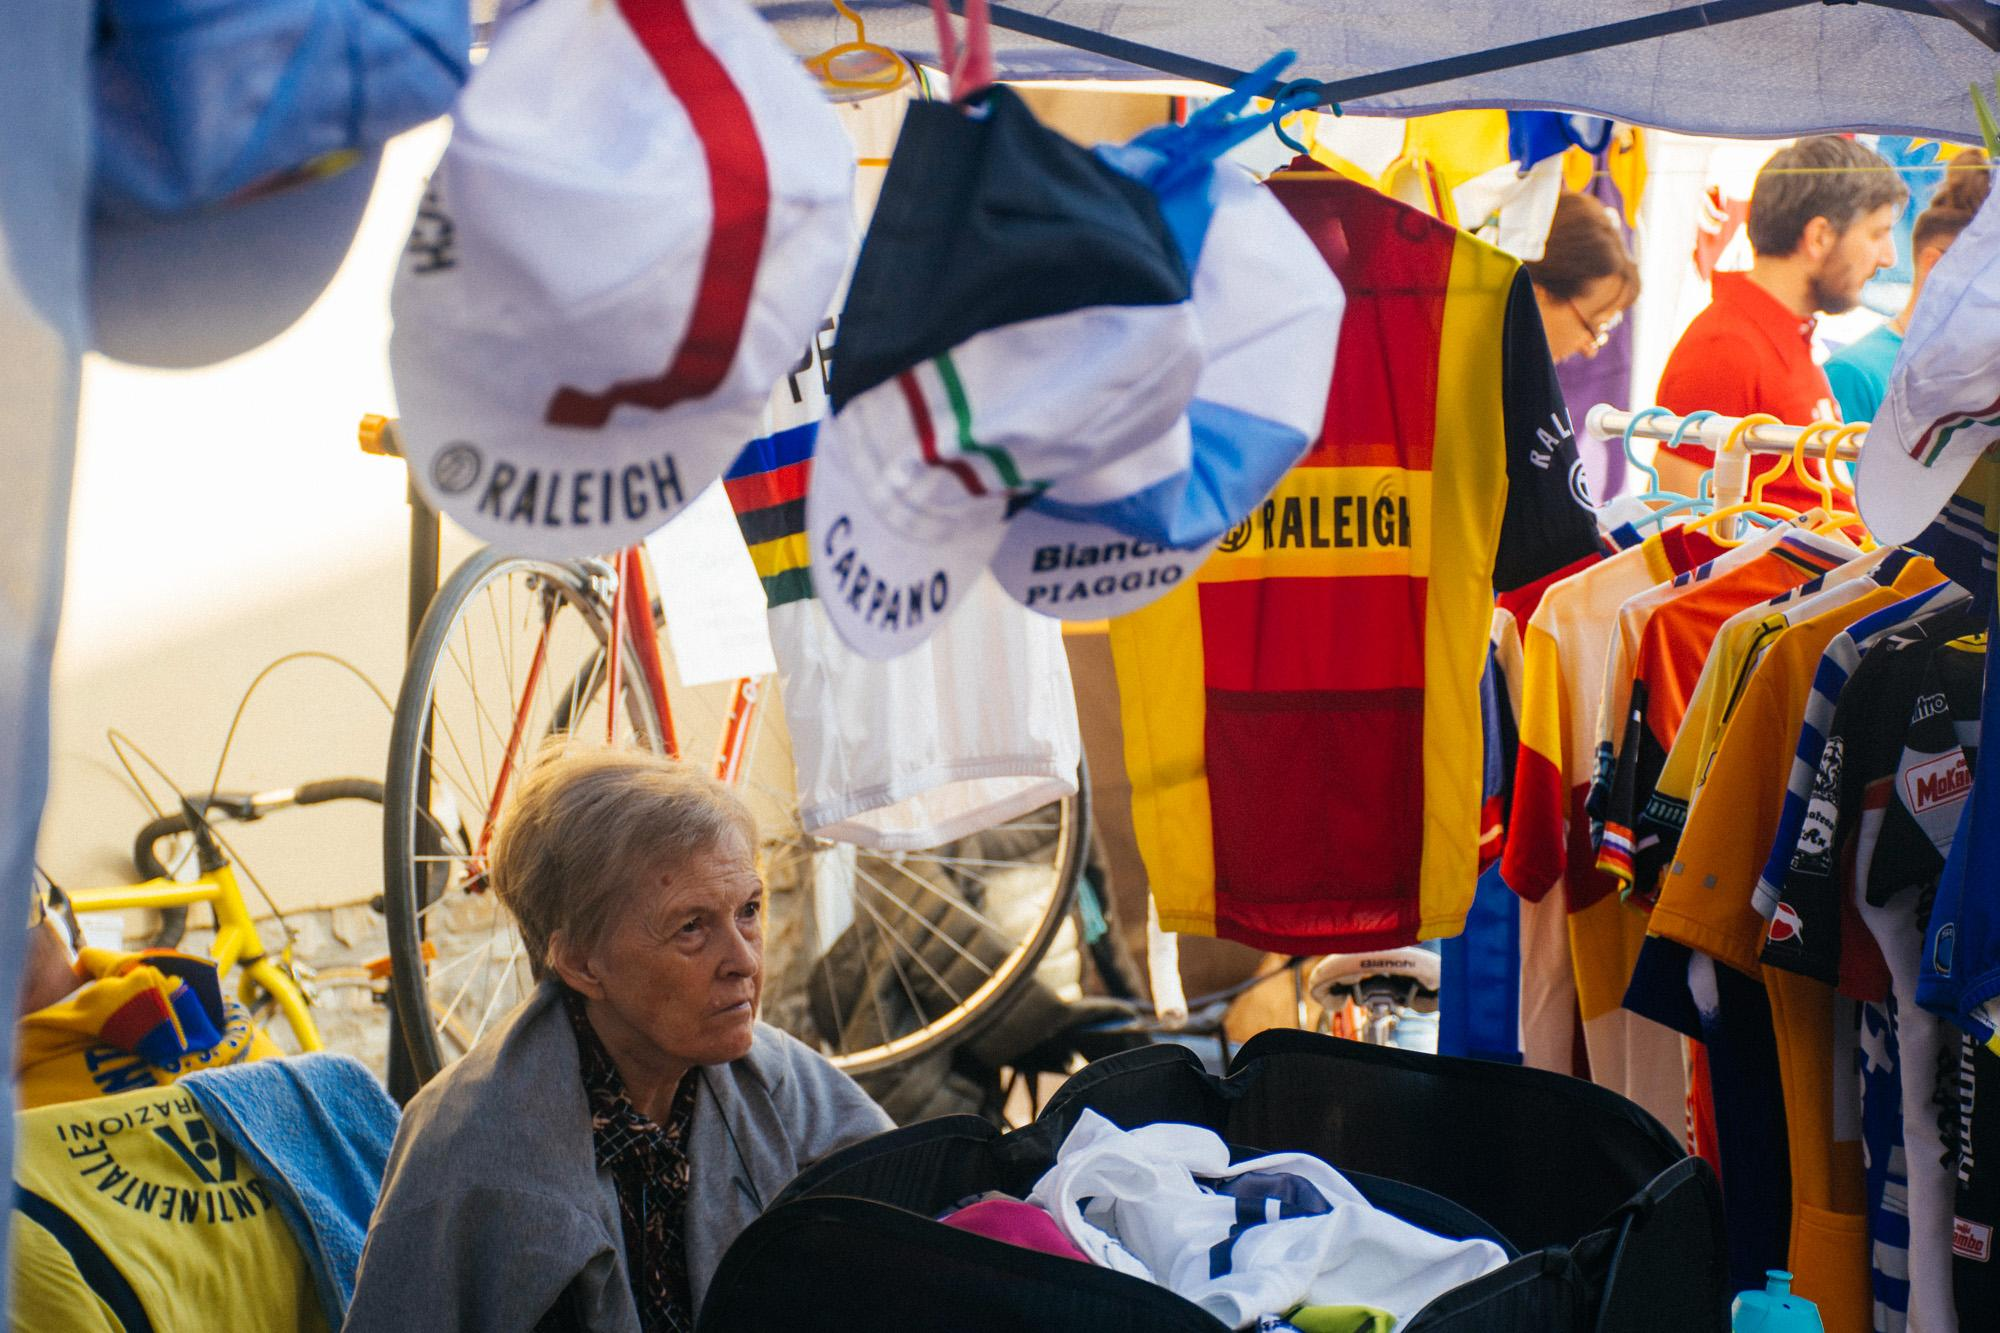 The Road to L'Eroica: An Italian Honeymoon